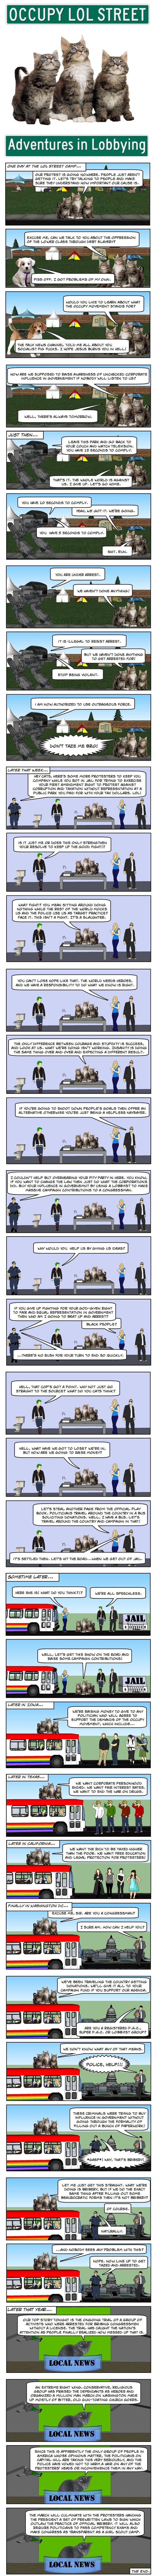 (Comic) Occupy LOL Street: Adventures In Lobbying